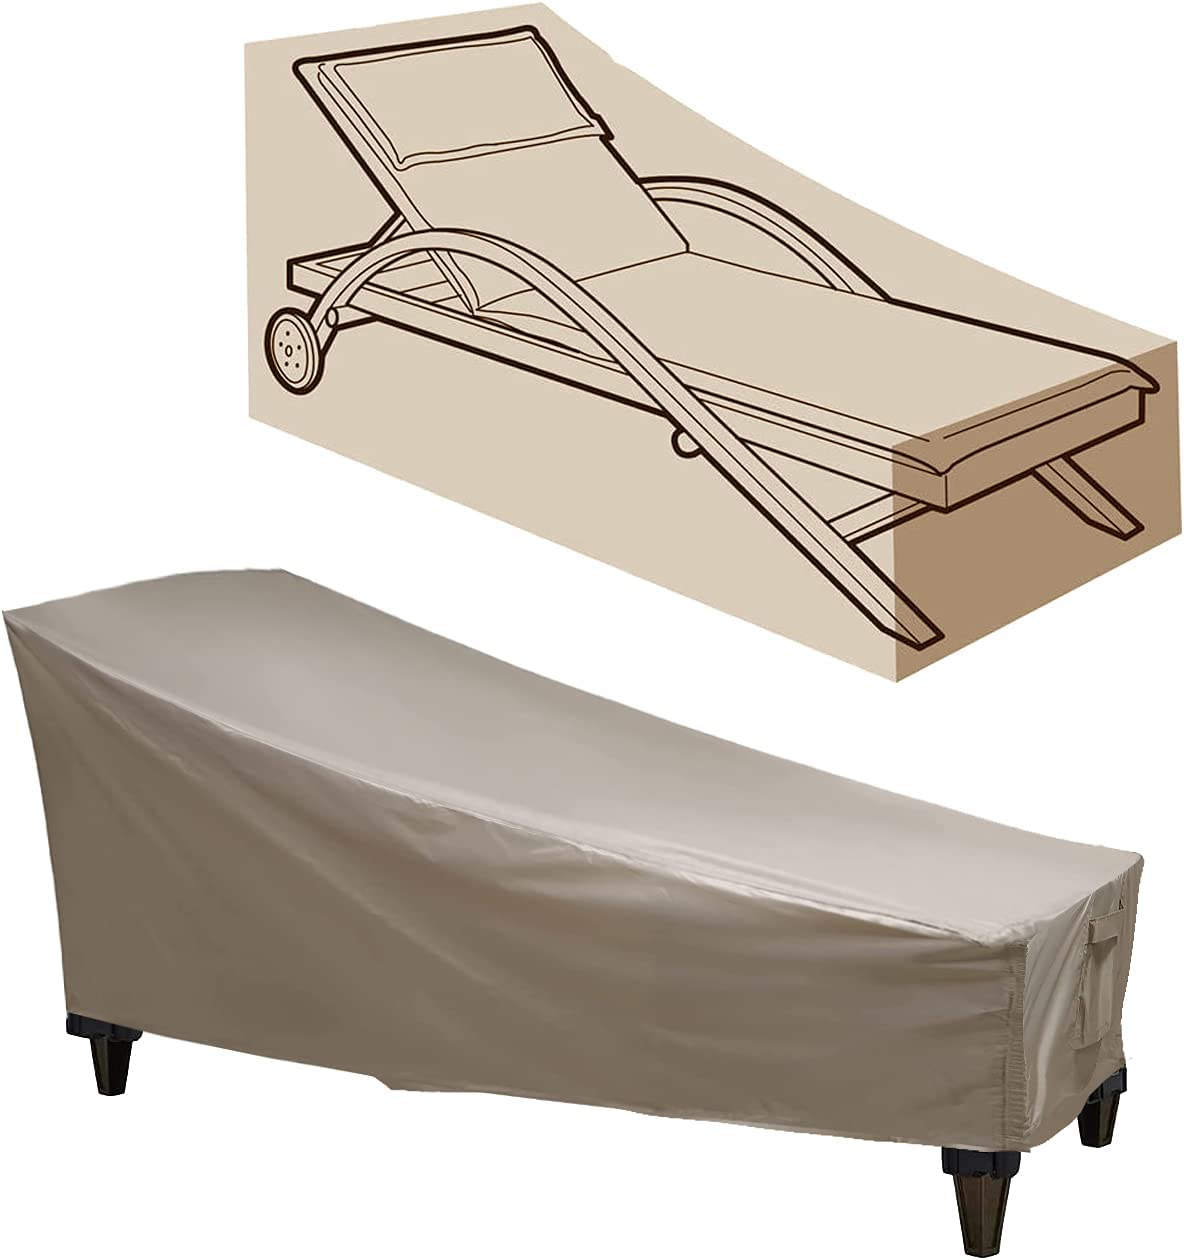 Patio It is very popular Lounge Chair Cover SEAL limited product Duty Heavy Chaise Outdoor